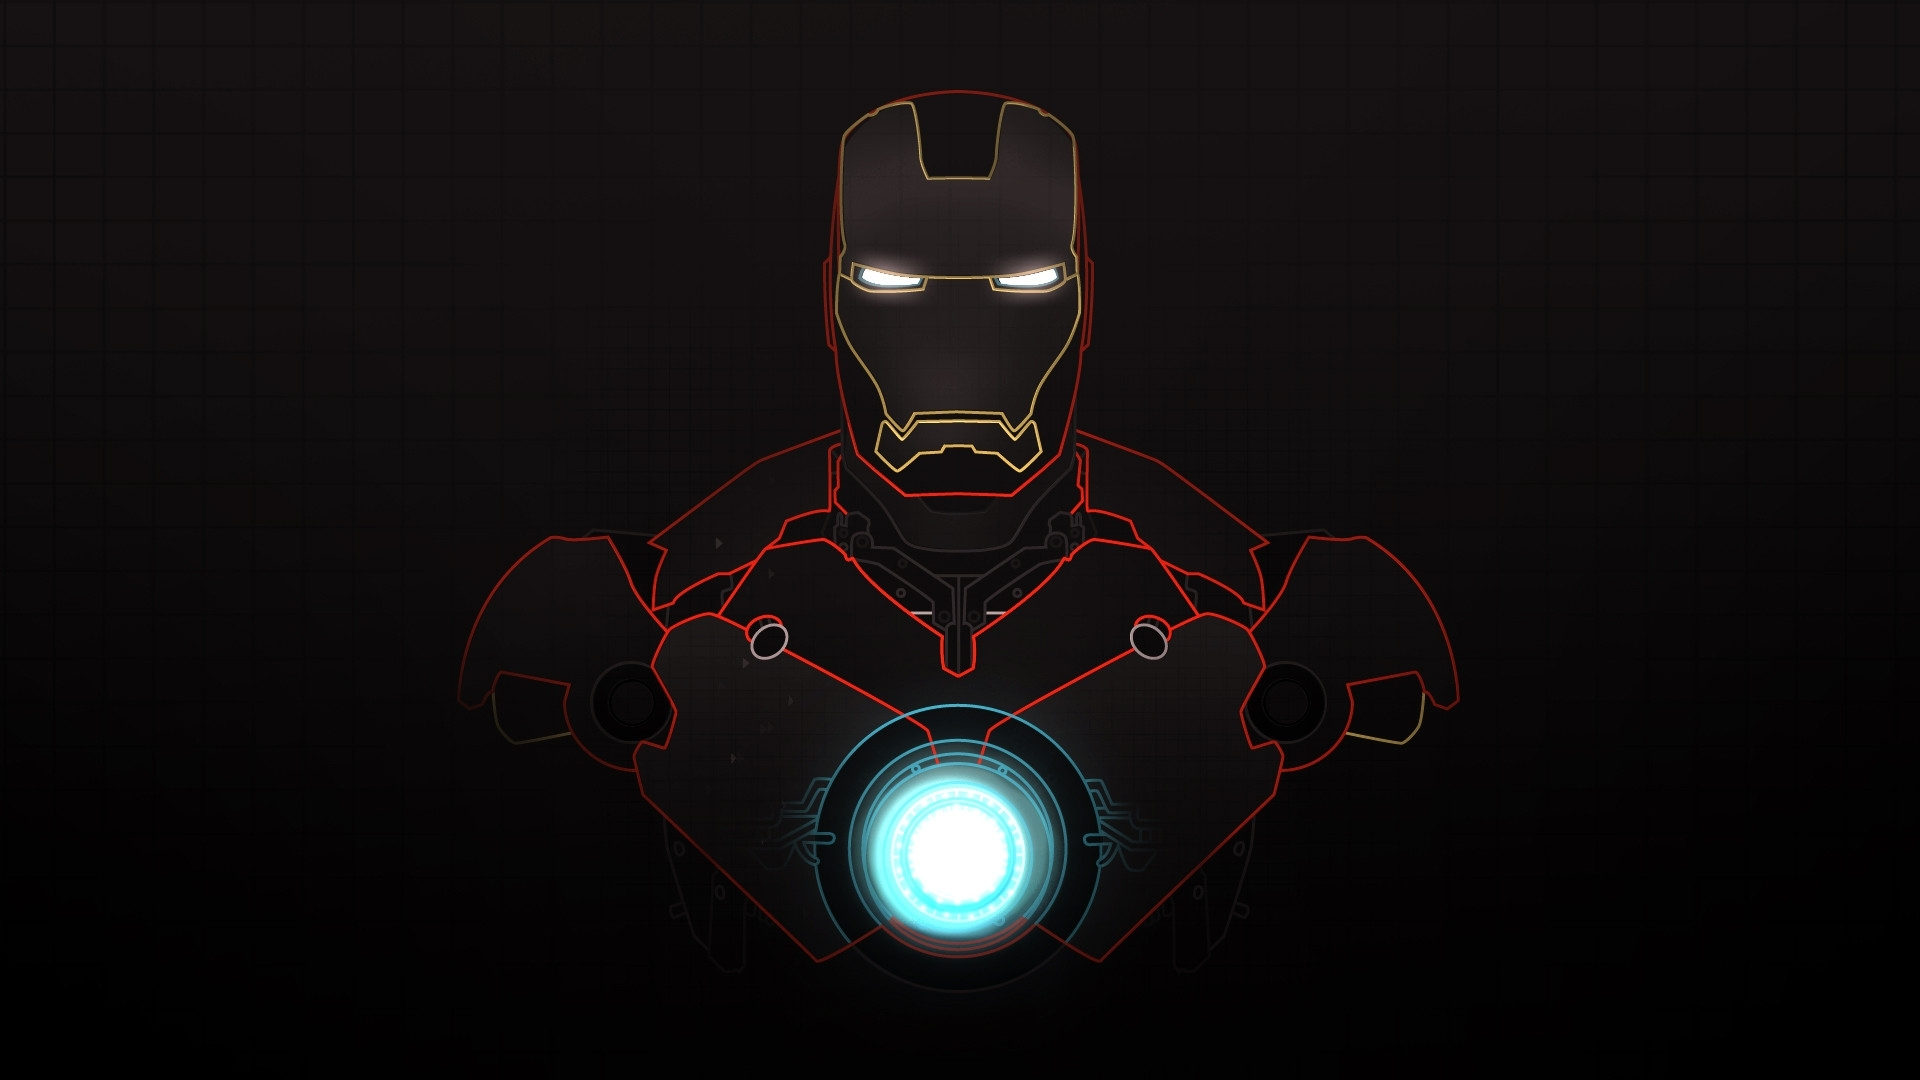 310 iron man fonds d'écran hd | arrière-plans - wallpaper abyss